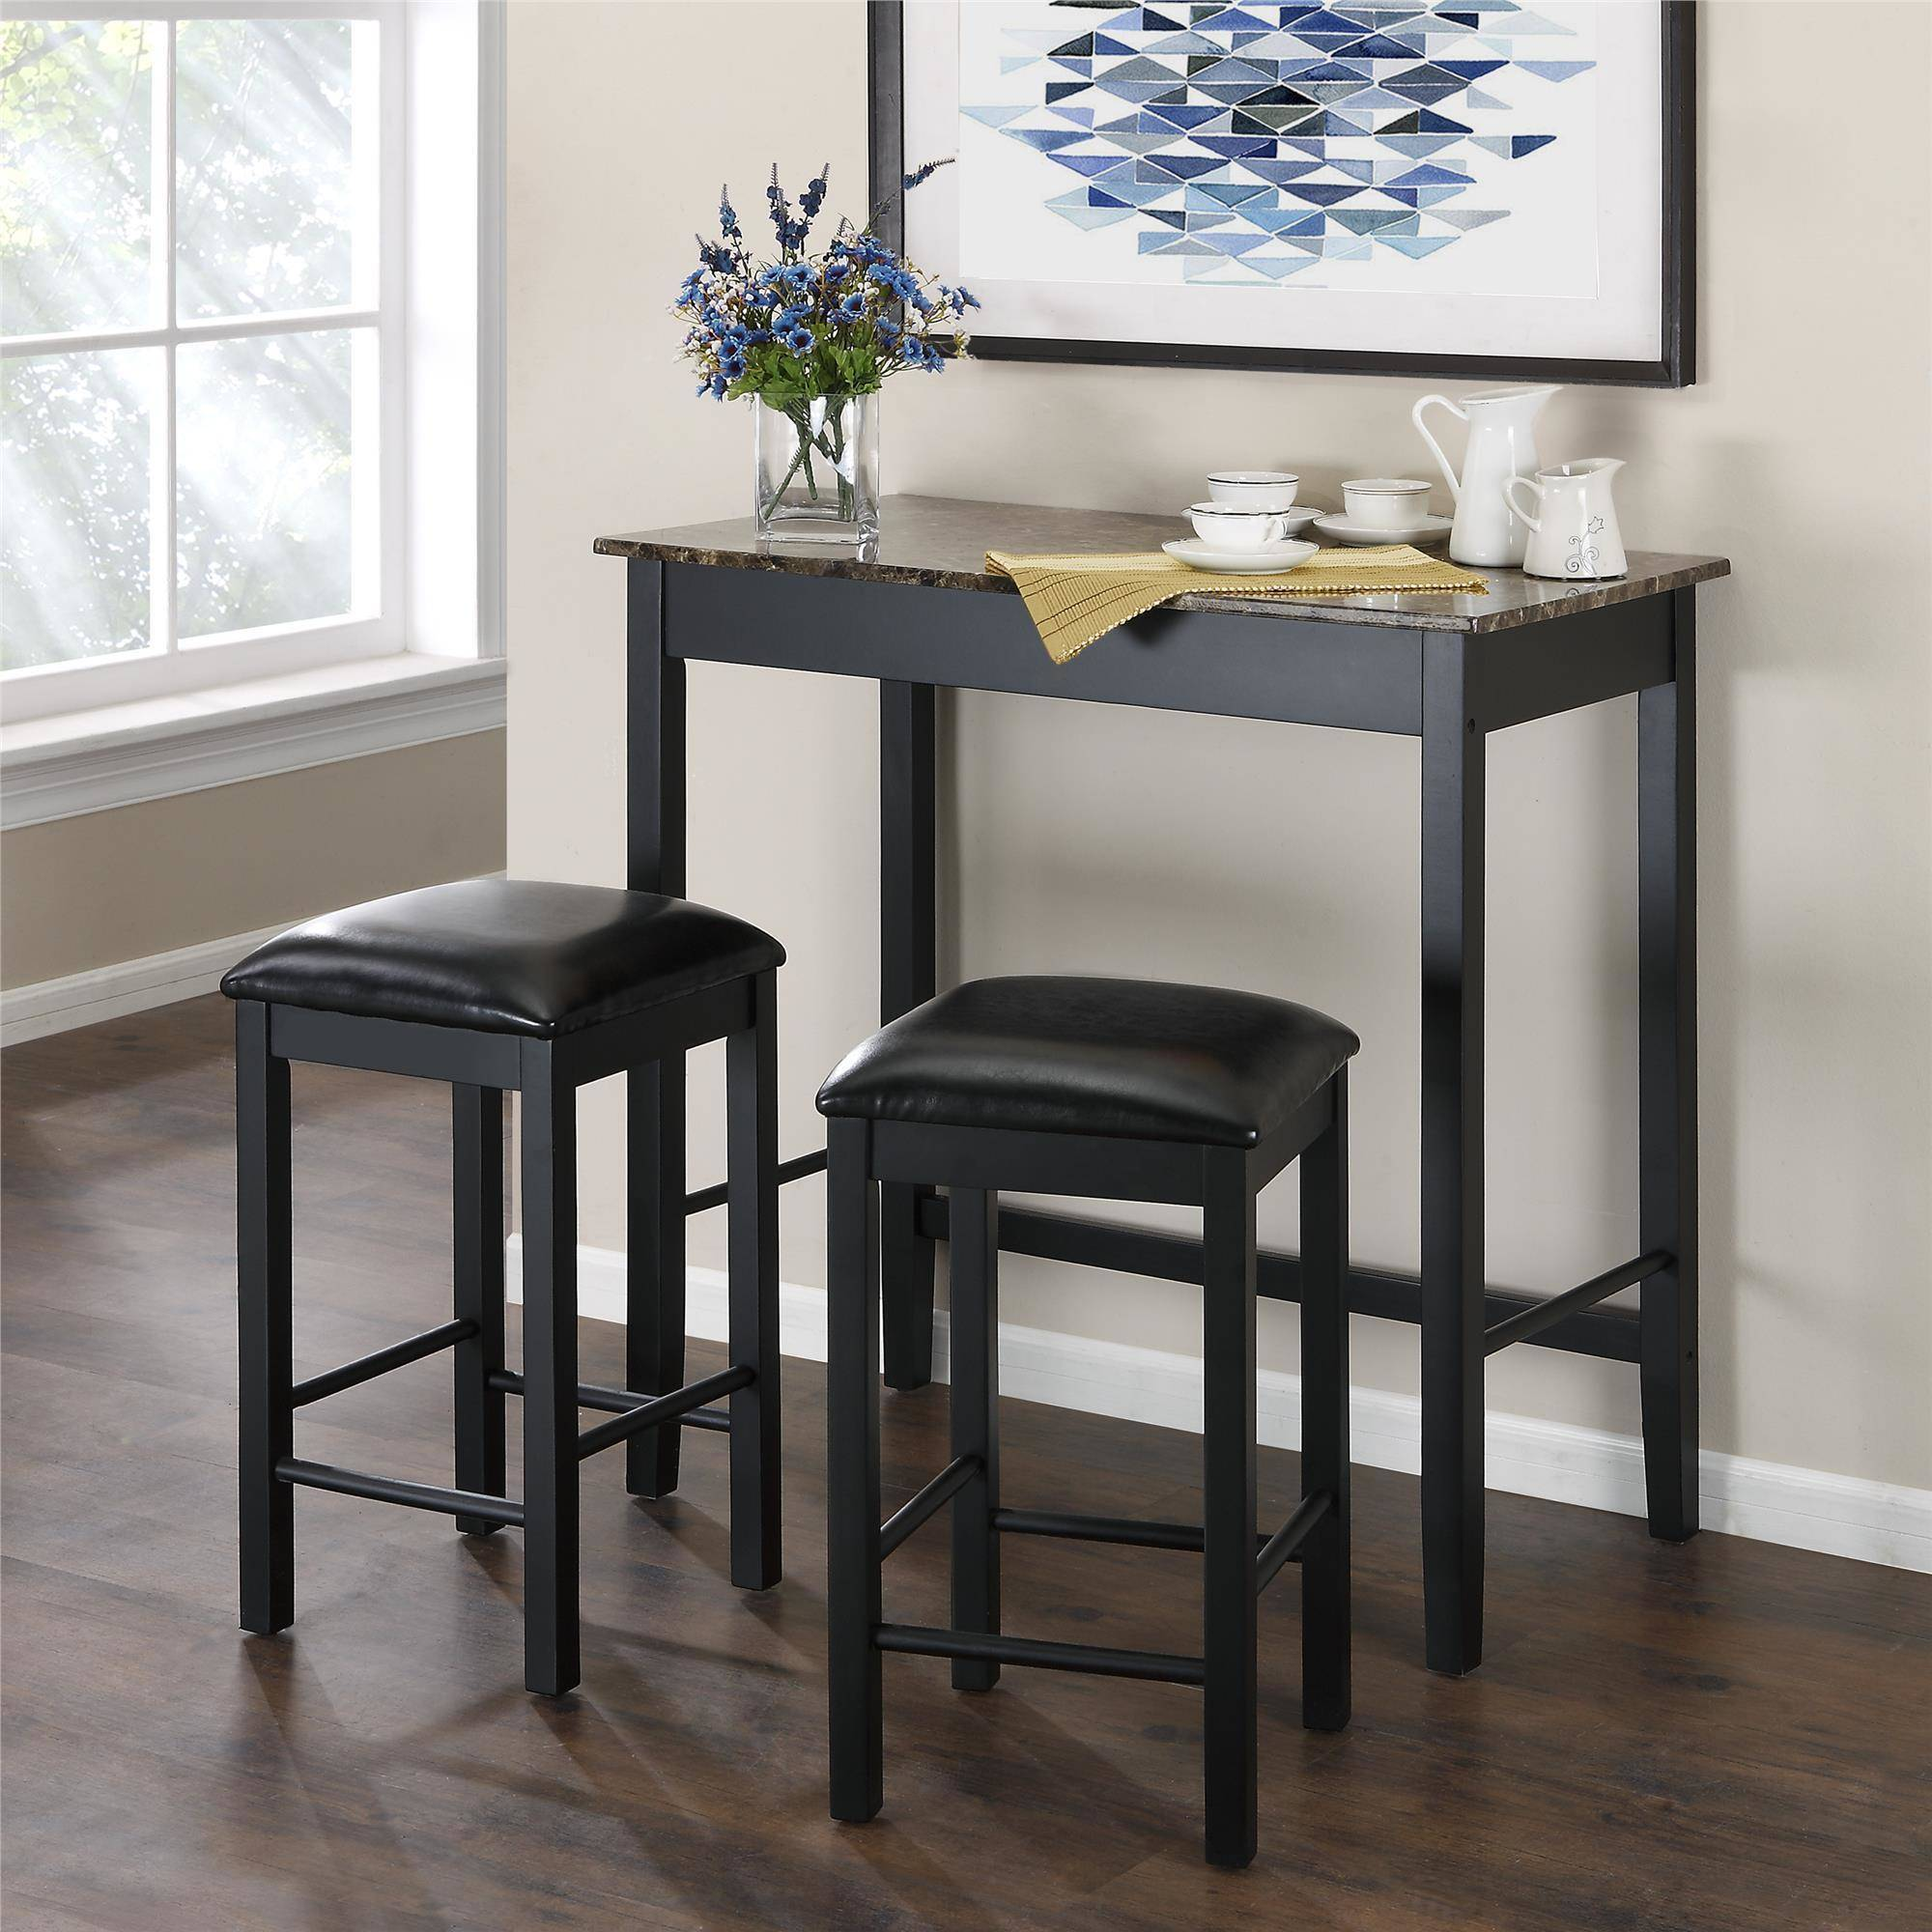 Merveilleux 3 Piece Pub Dining Set Faux Marble Kitchen Counter Height Bar Table Stools  Black